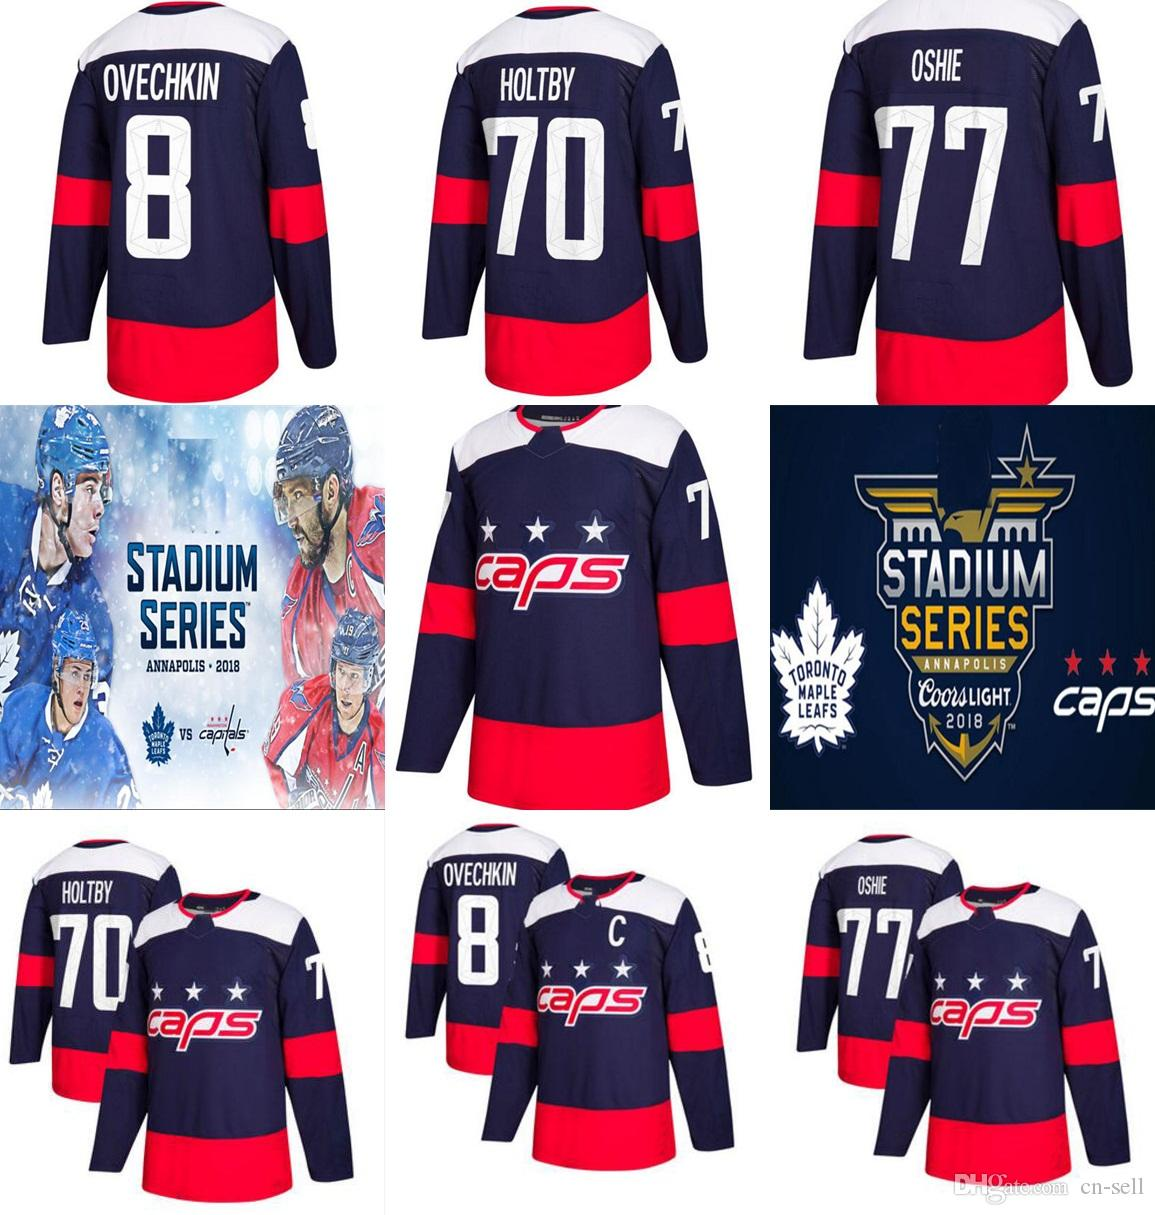 f732dadb2 Mens Womens Kids Braden Holtby 2018 Stadium Series Hockey Jerseys  Washington Capitals Leafs Alex Ovechkin Brooks Orpik Connolly Smith-Pelly 8  Alex Ovechkin ...